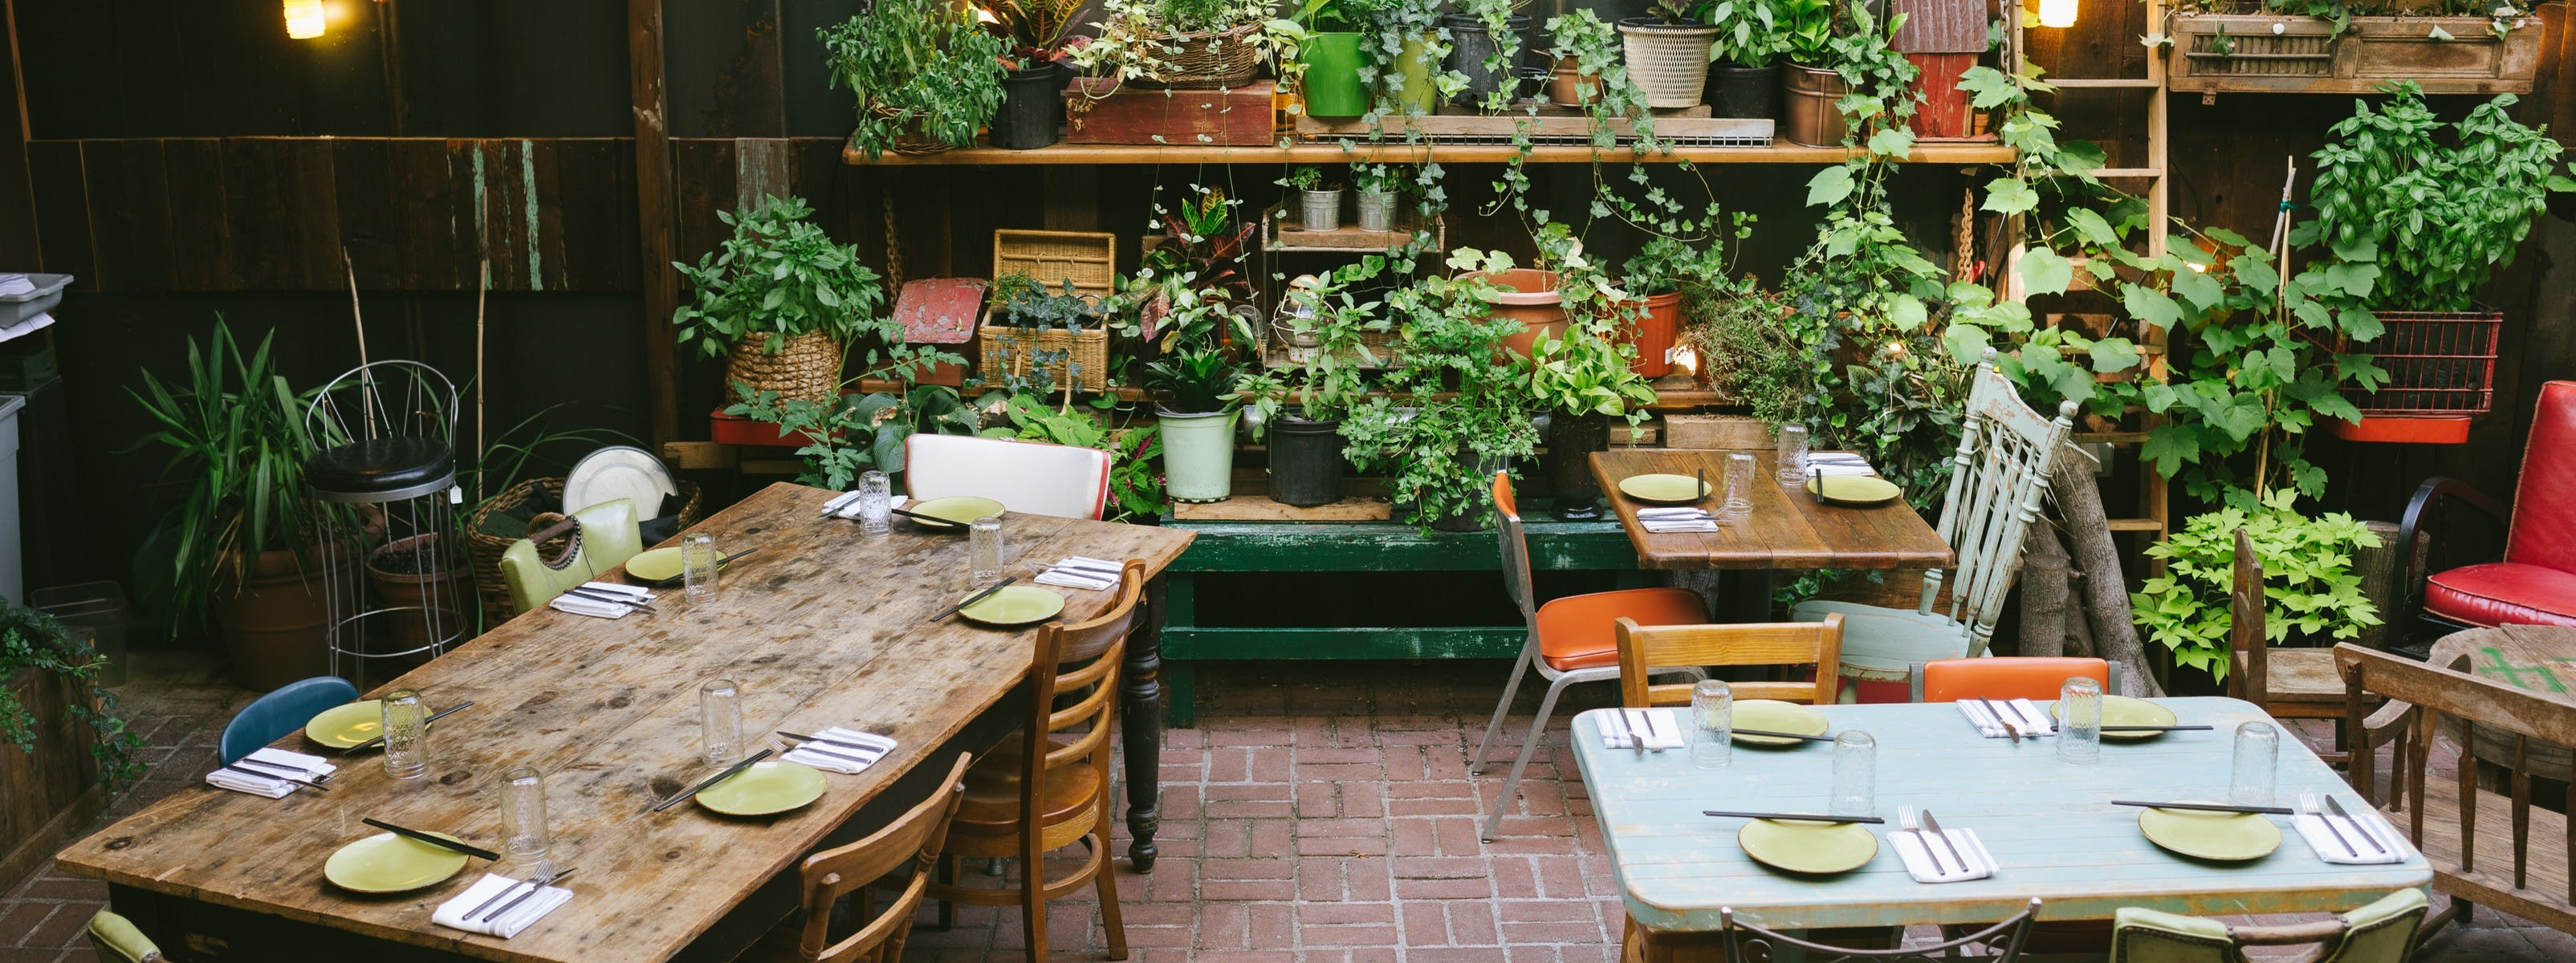 327 Nyc Restaurants Where You Can Eat Outside Today New York The Infatuation